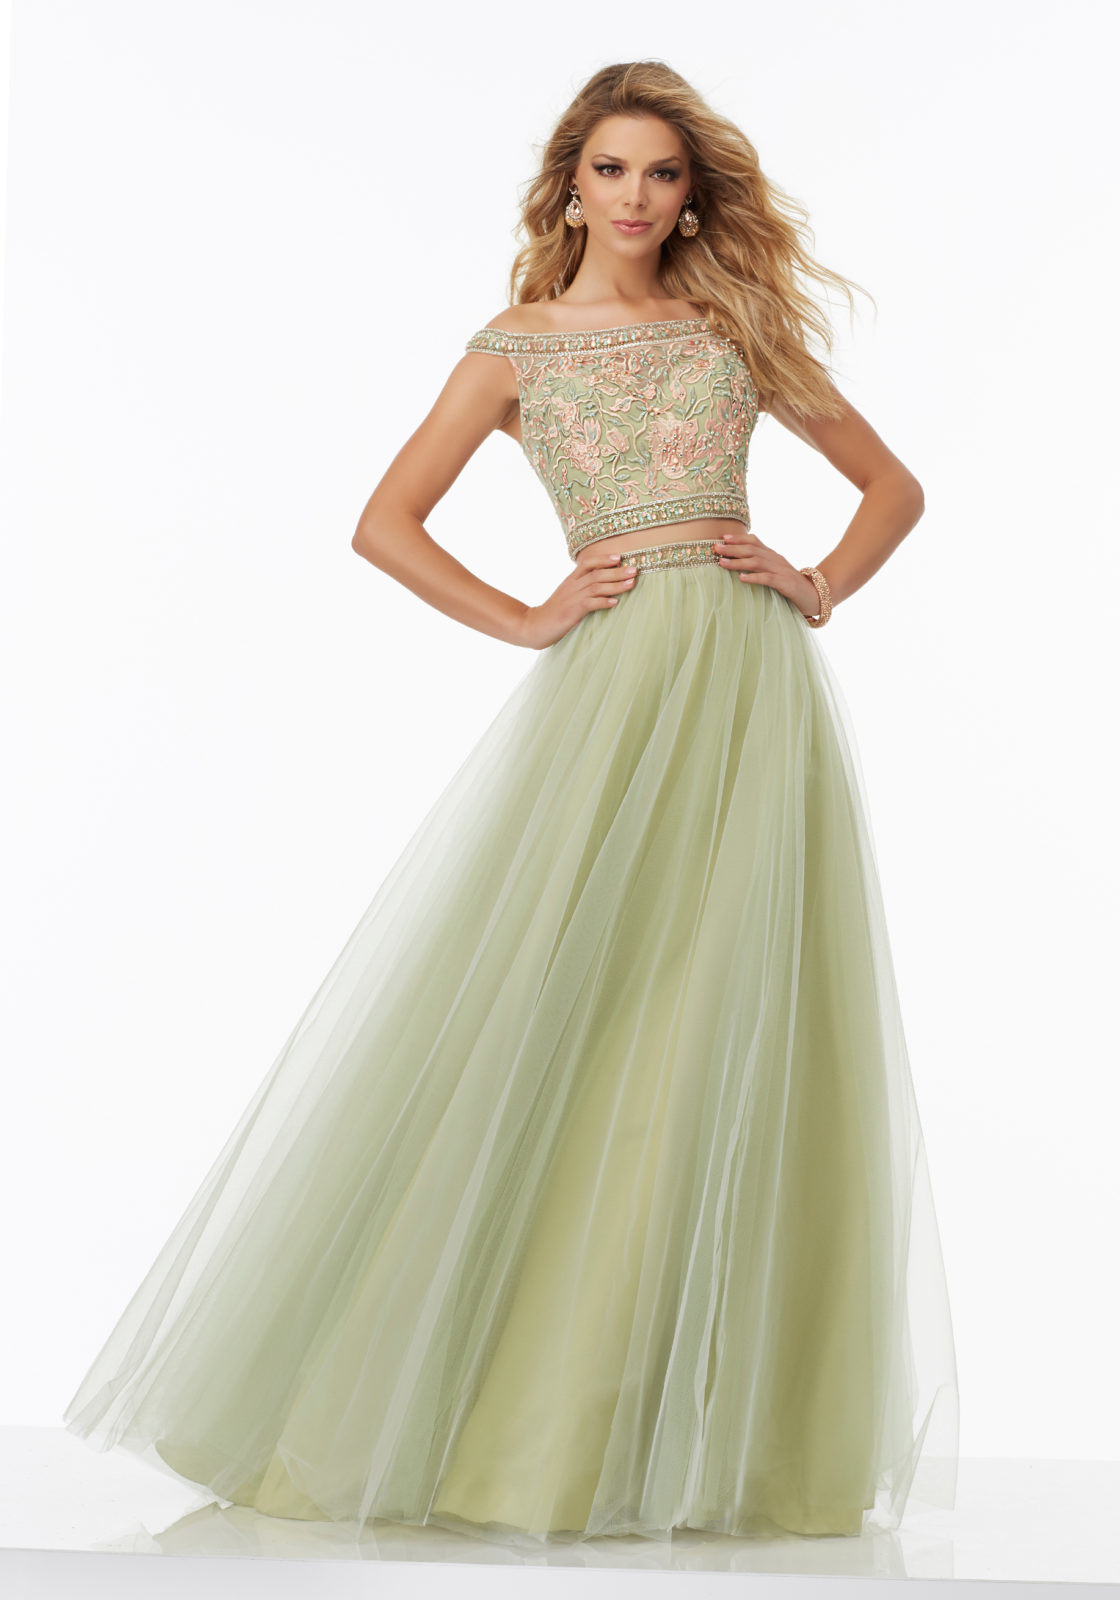 2017 New Cocktail Party Evening Prom Dresses Pd9923